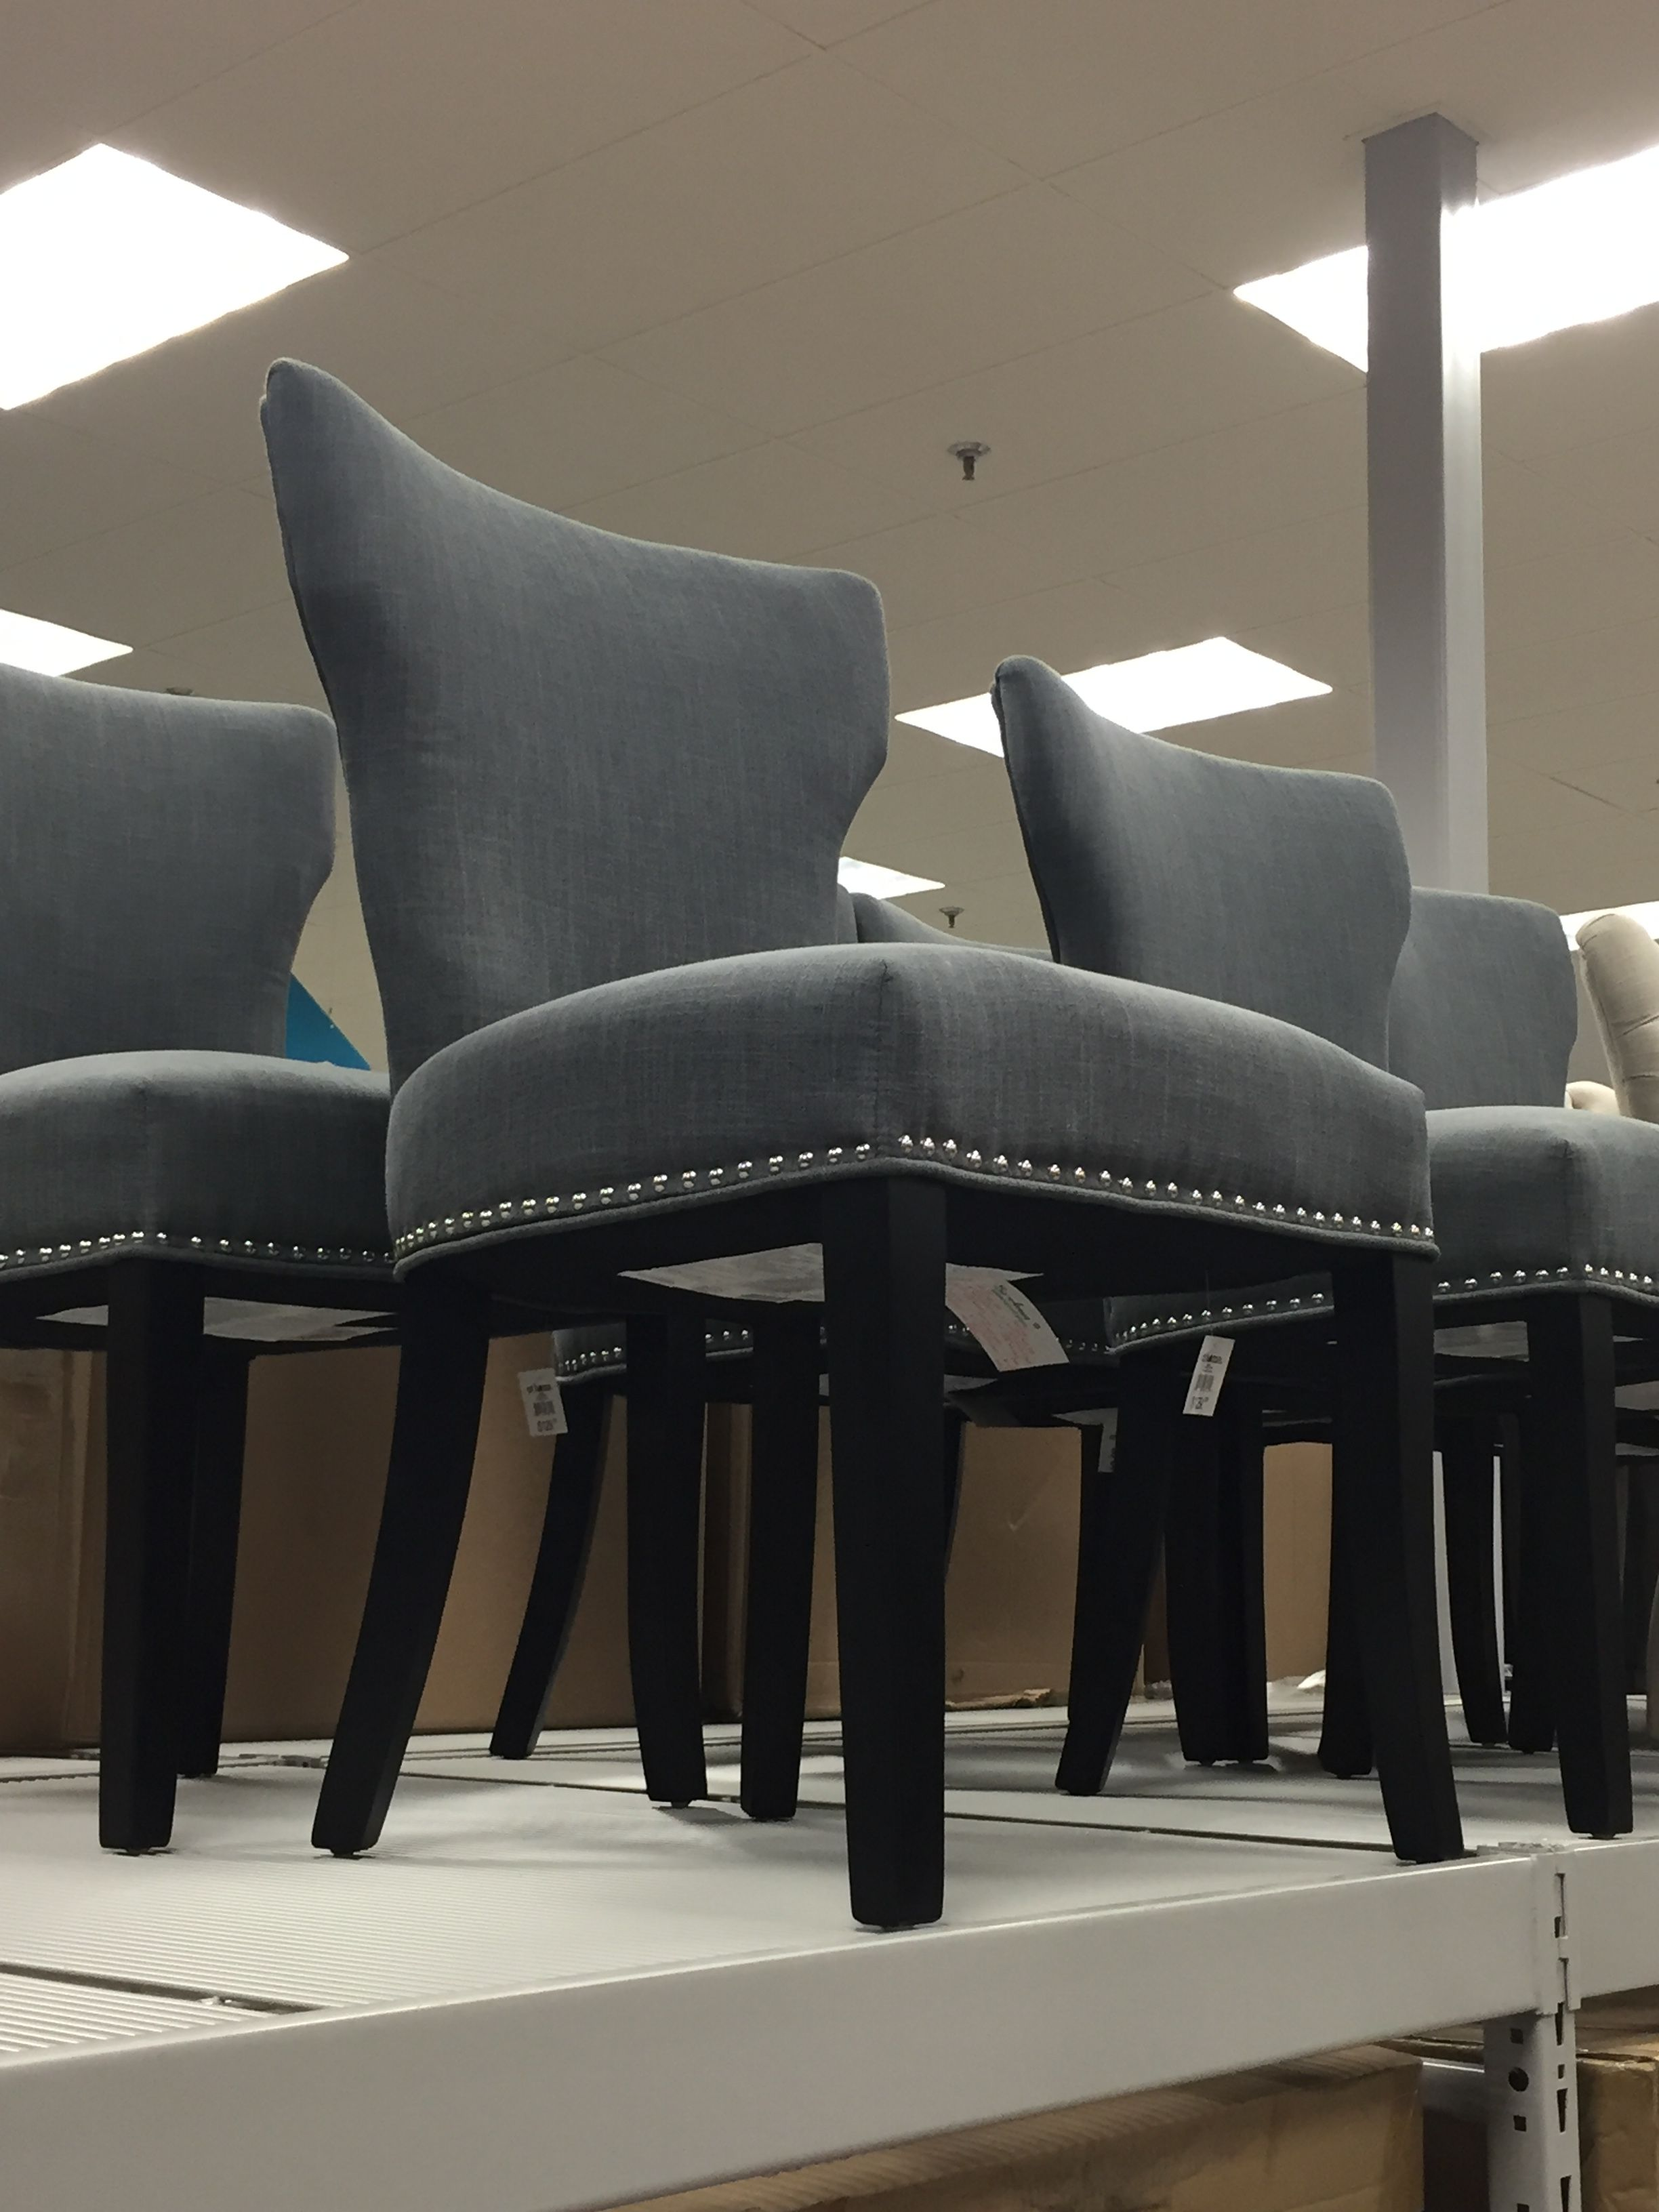 Kitchen chair. Store: At Home  Furniture, Dining chairs, Chair